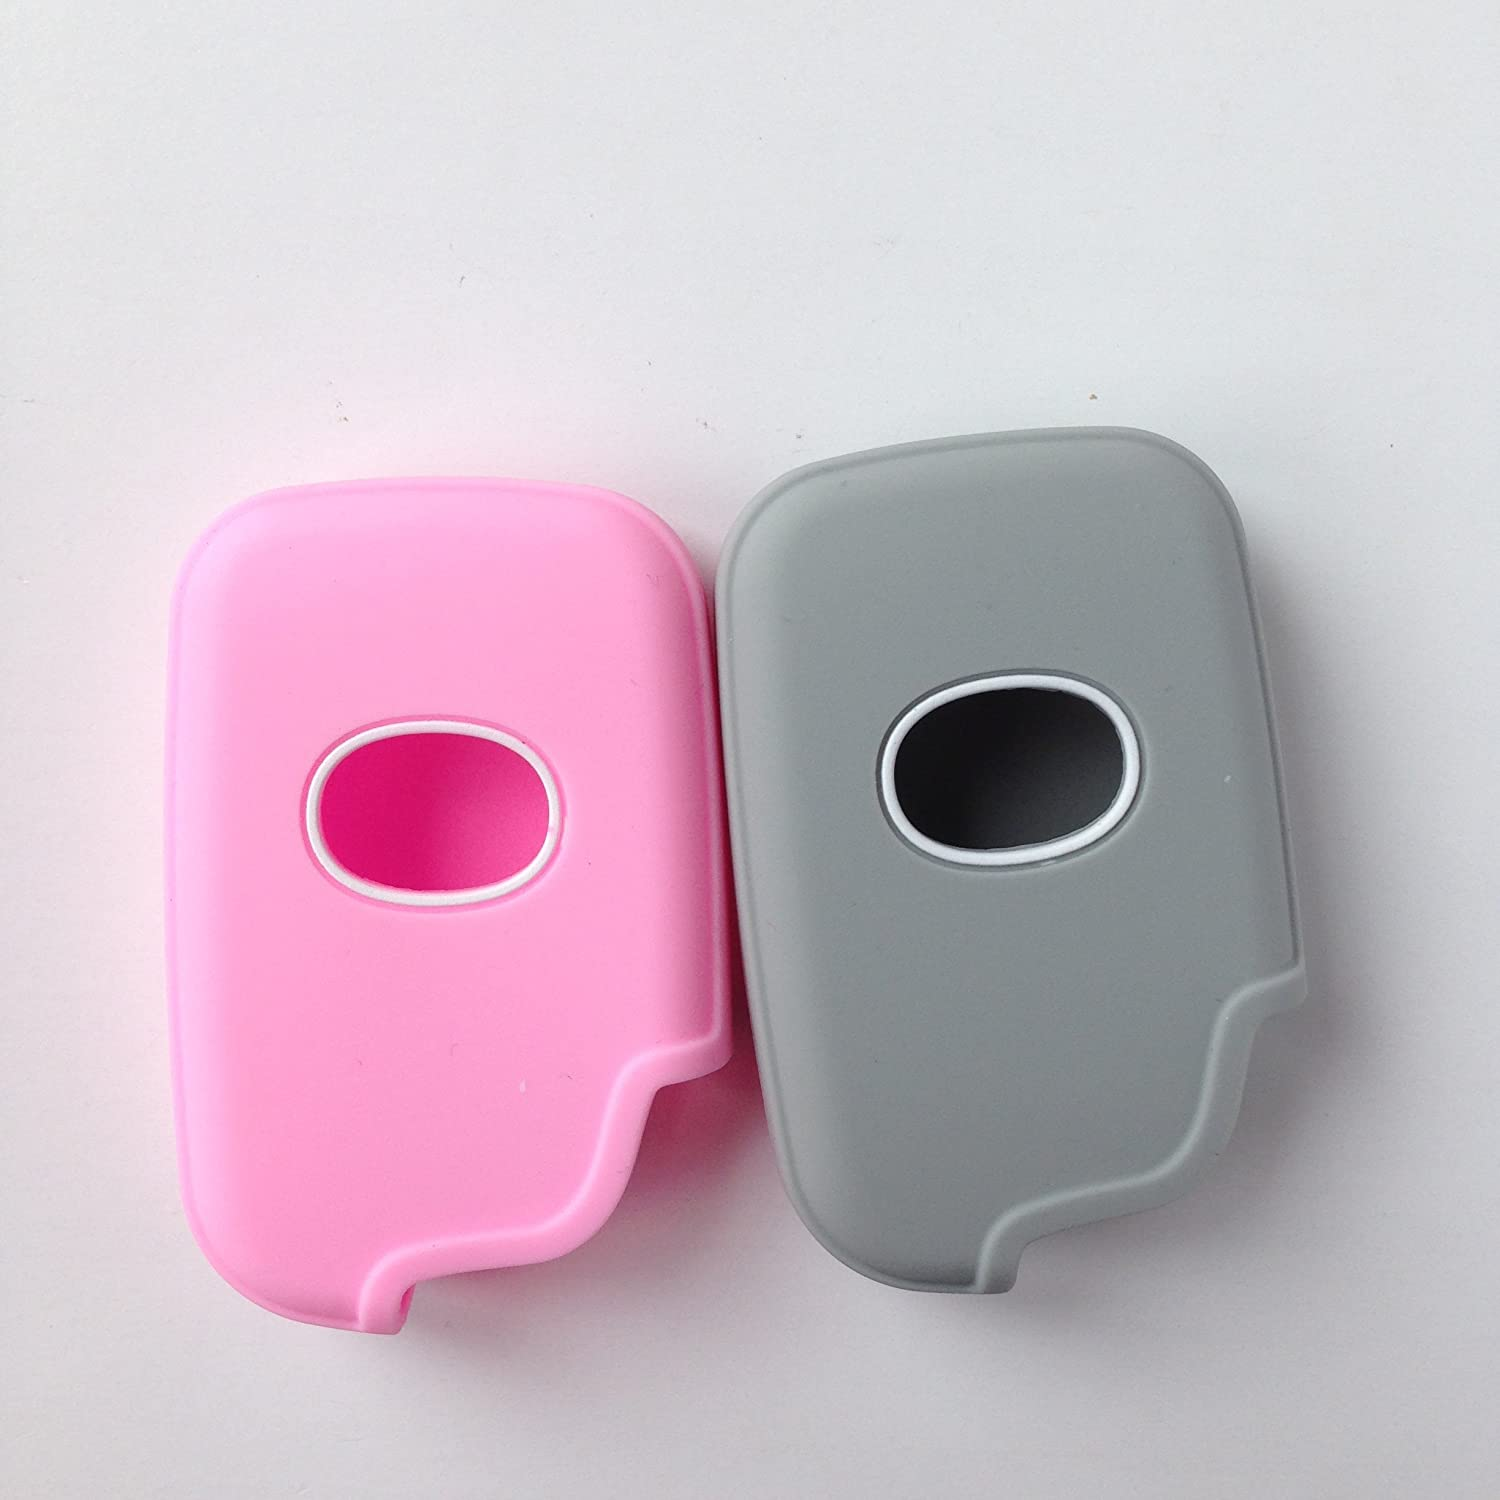 2pcs New Protective Fob Skin Key Cover for Lexus GS430 GS300 IS350 IS250 LS460 GS450h GS350 ES350 LS600h IS350 Key Jacket Keyless Fob Remote Smart Key Jacket Key Protector